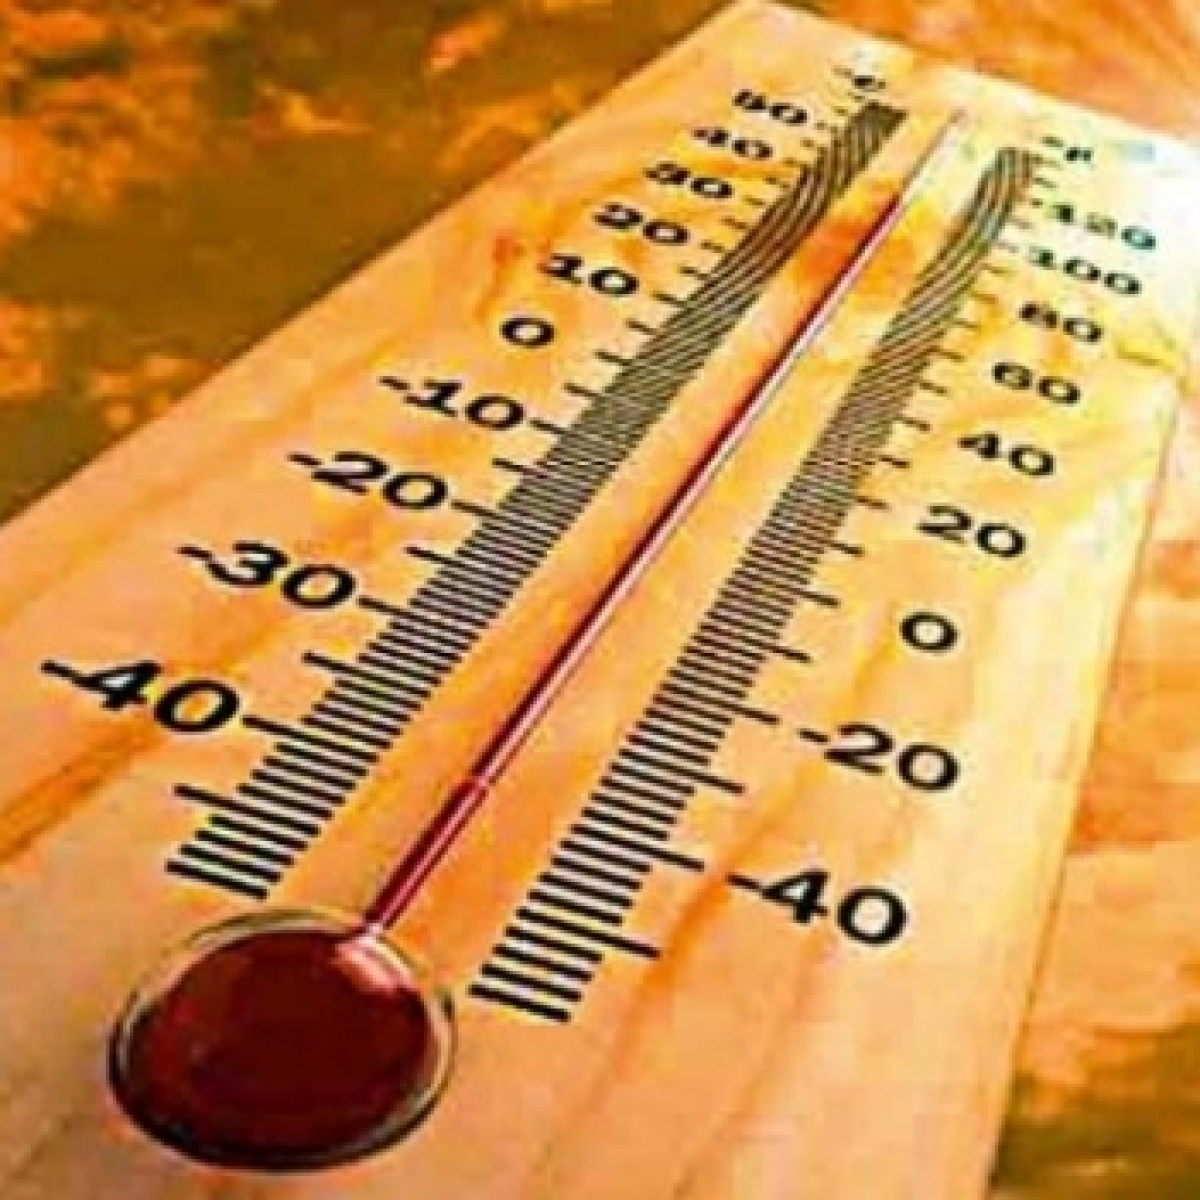 Weather update: March third warmest in 121 years in terms of monthly average temperature, says IMD